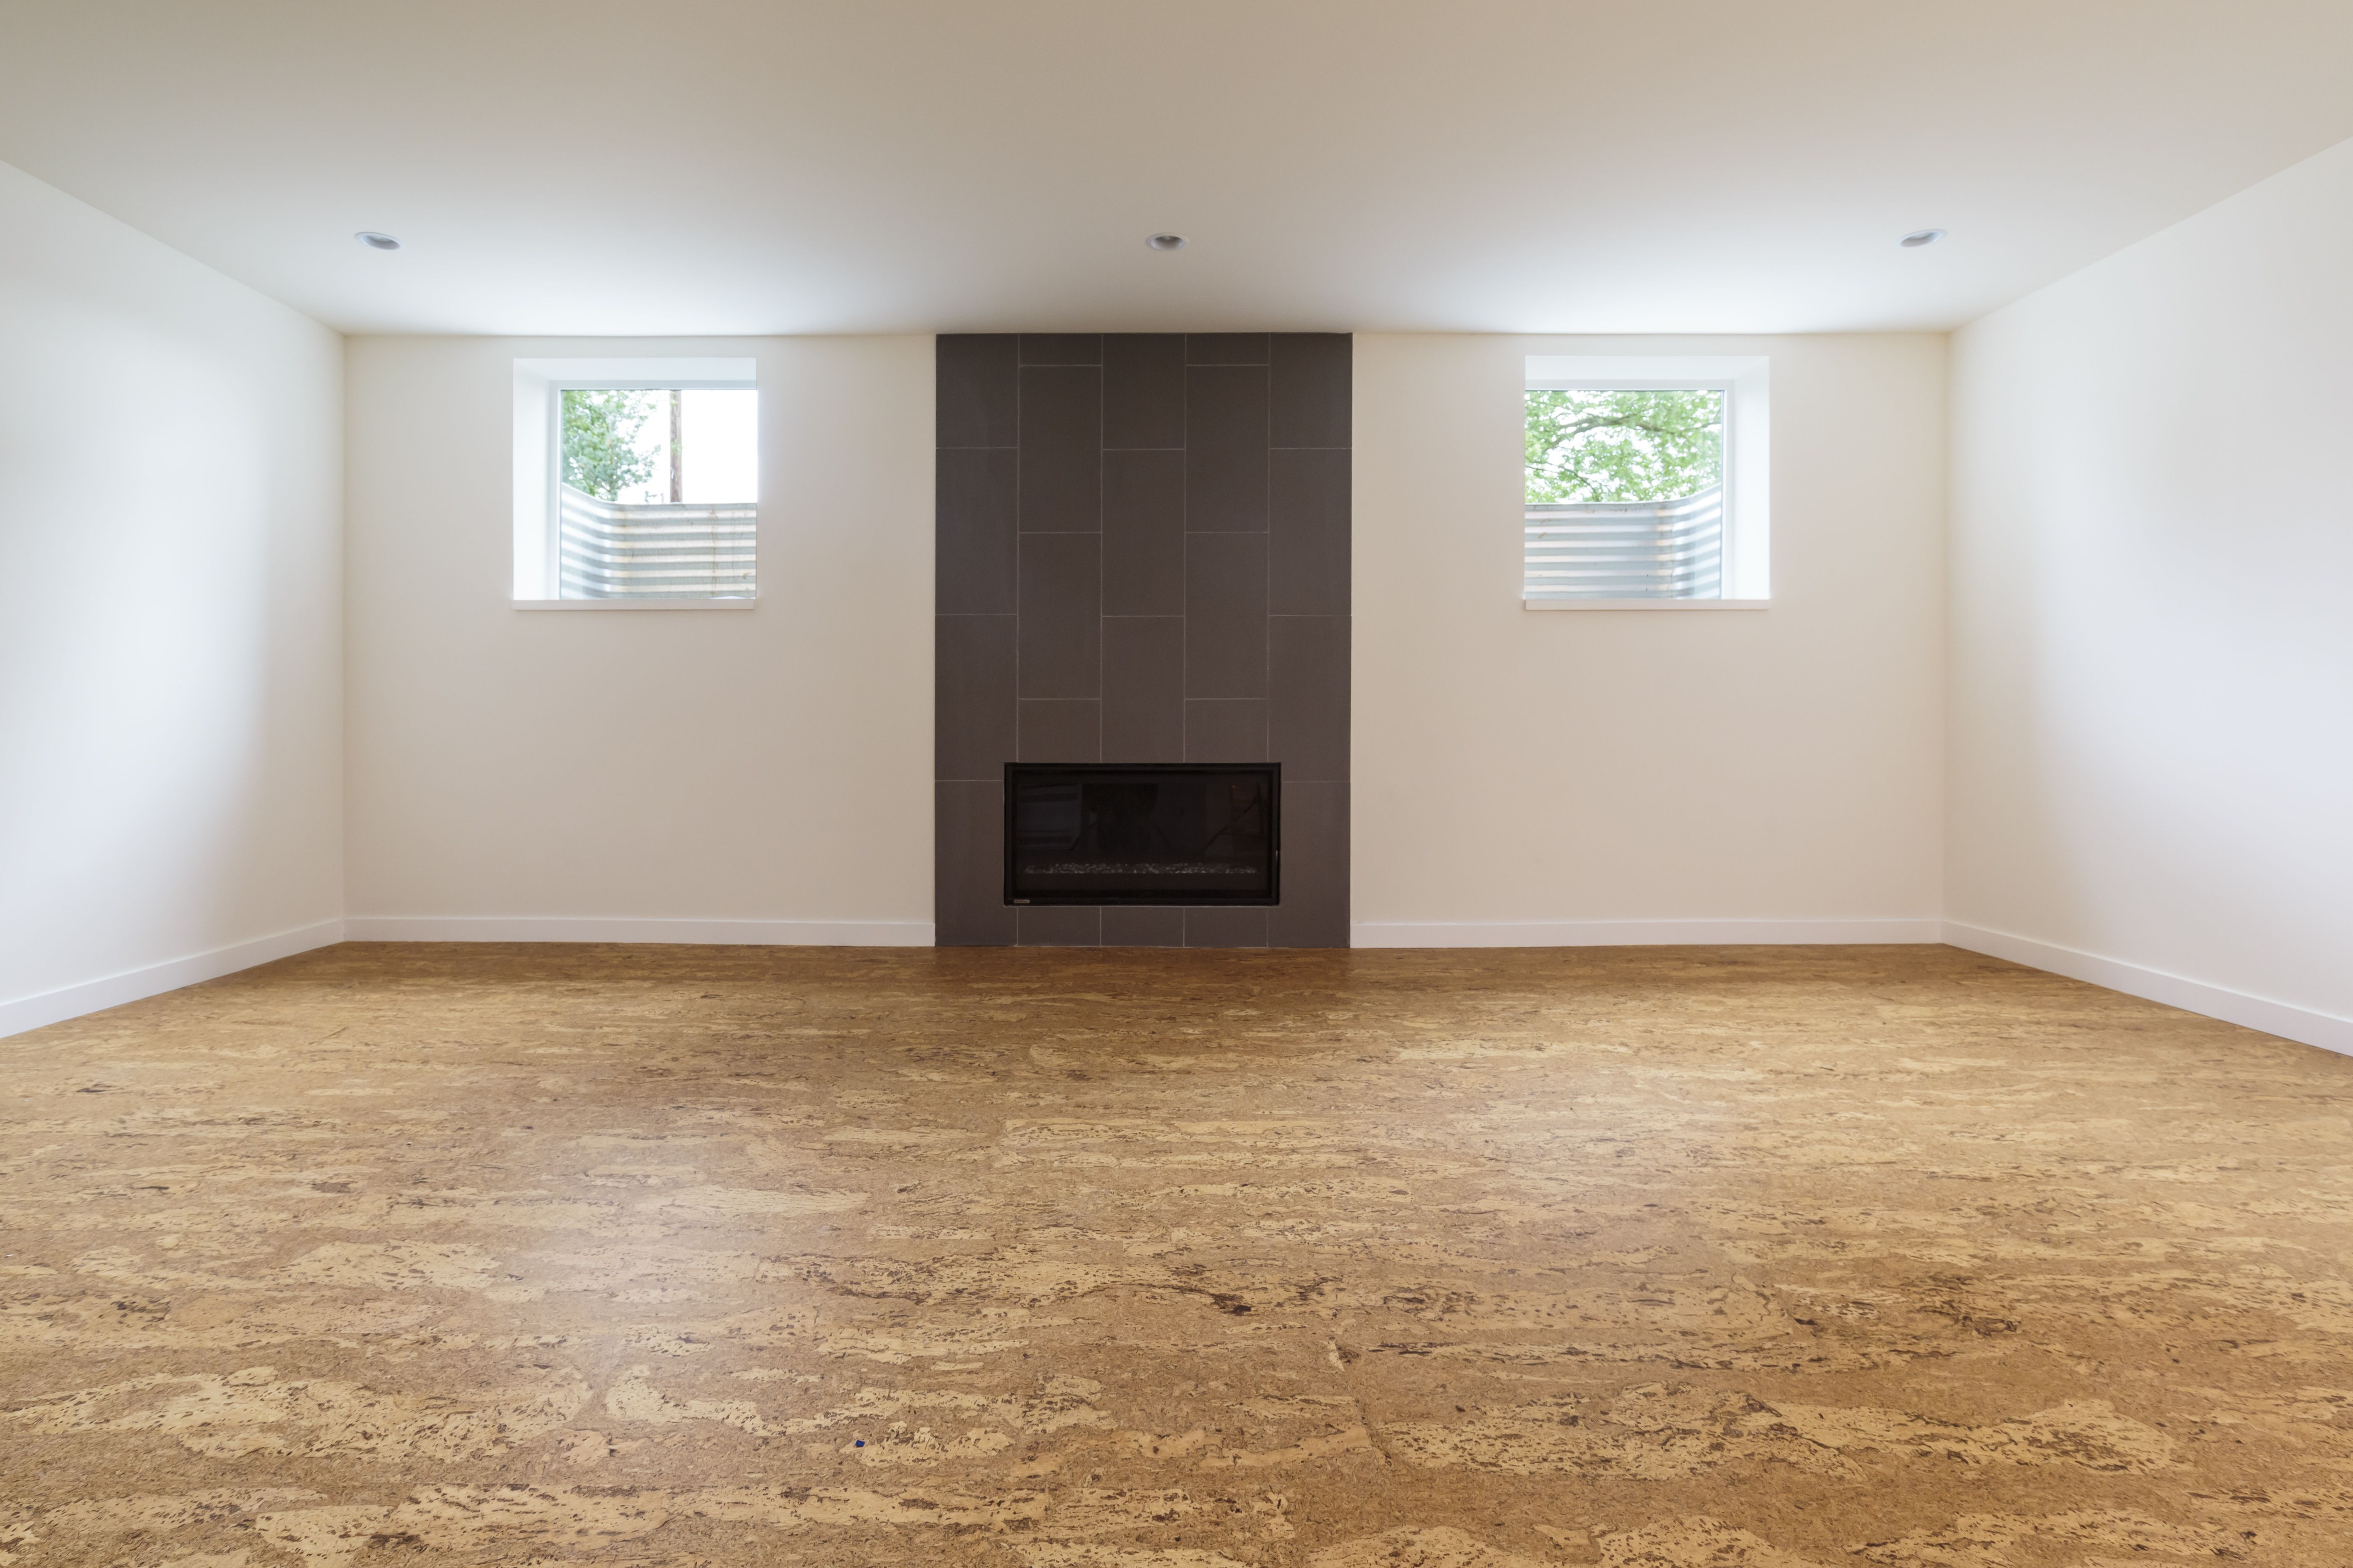 hardwood floors in bedroom or carpet of the best flooring options for senior citizens in cork flooring in an unfurnished home